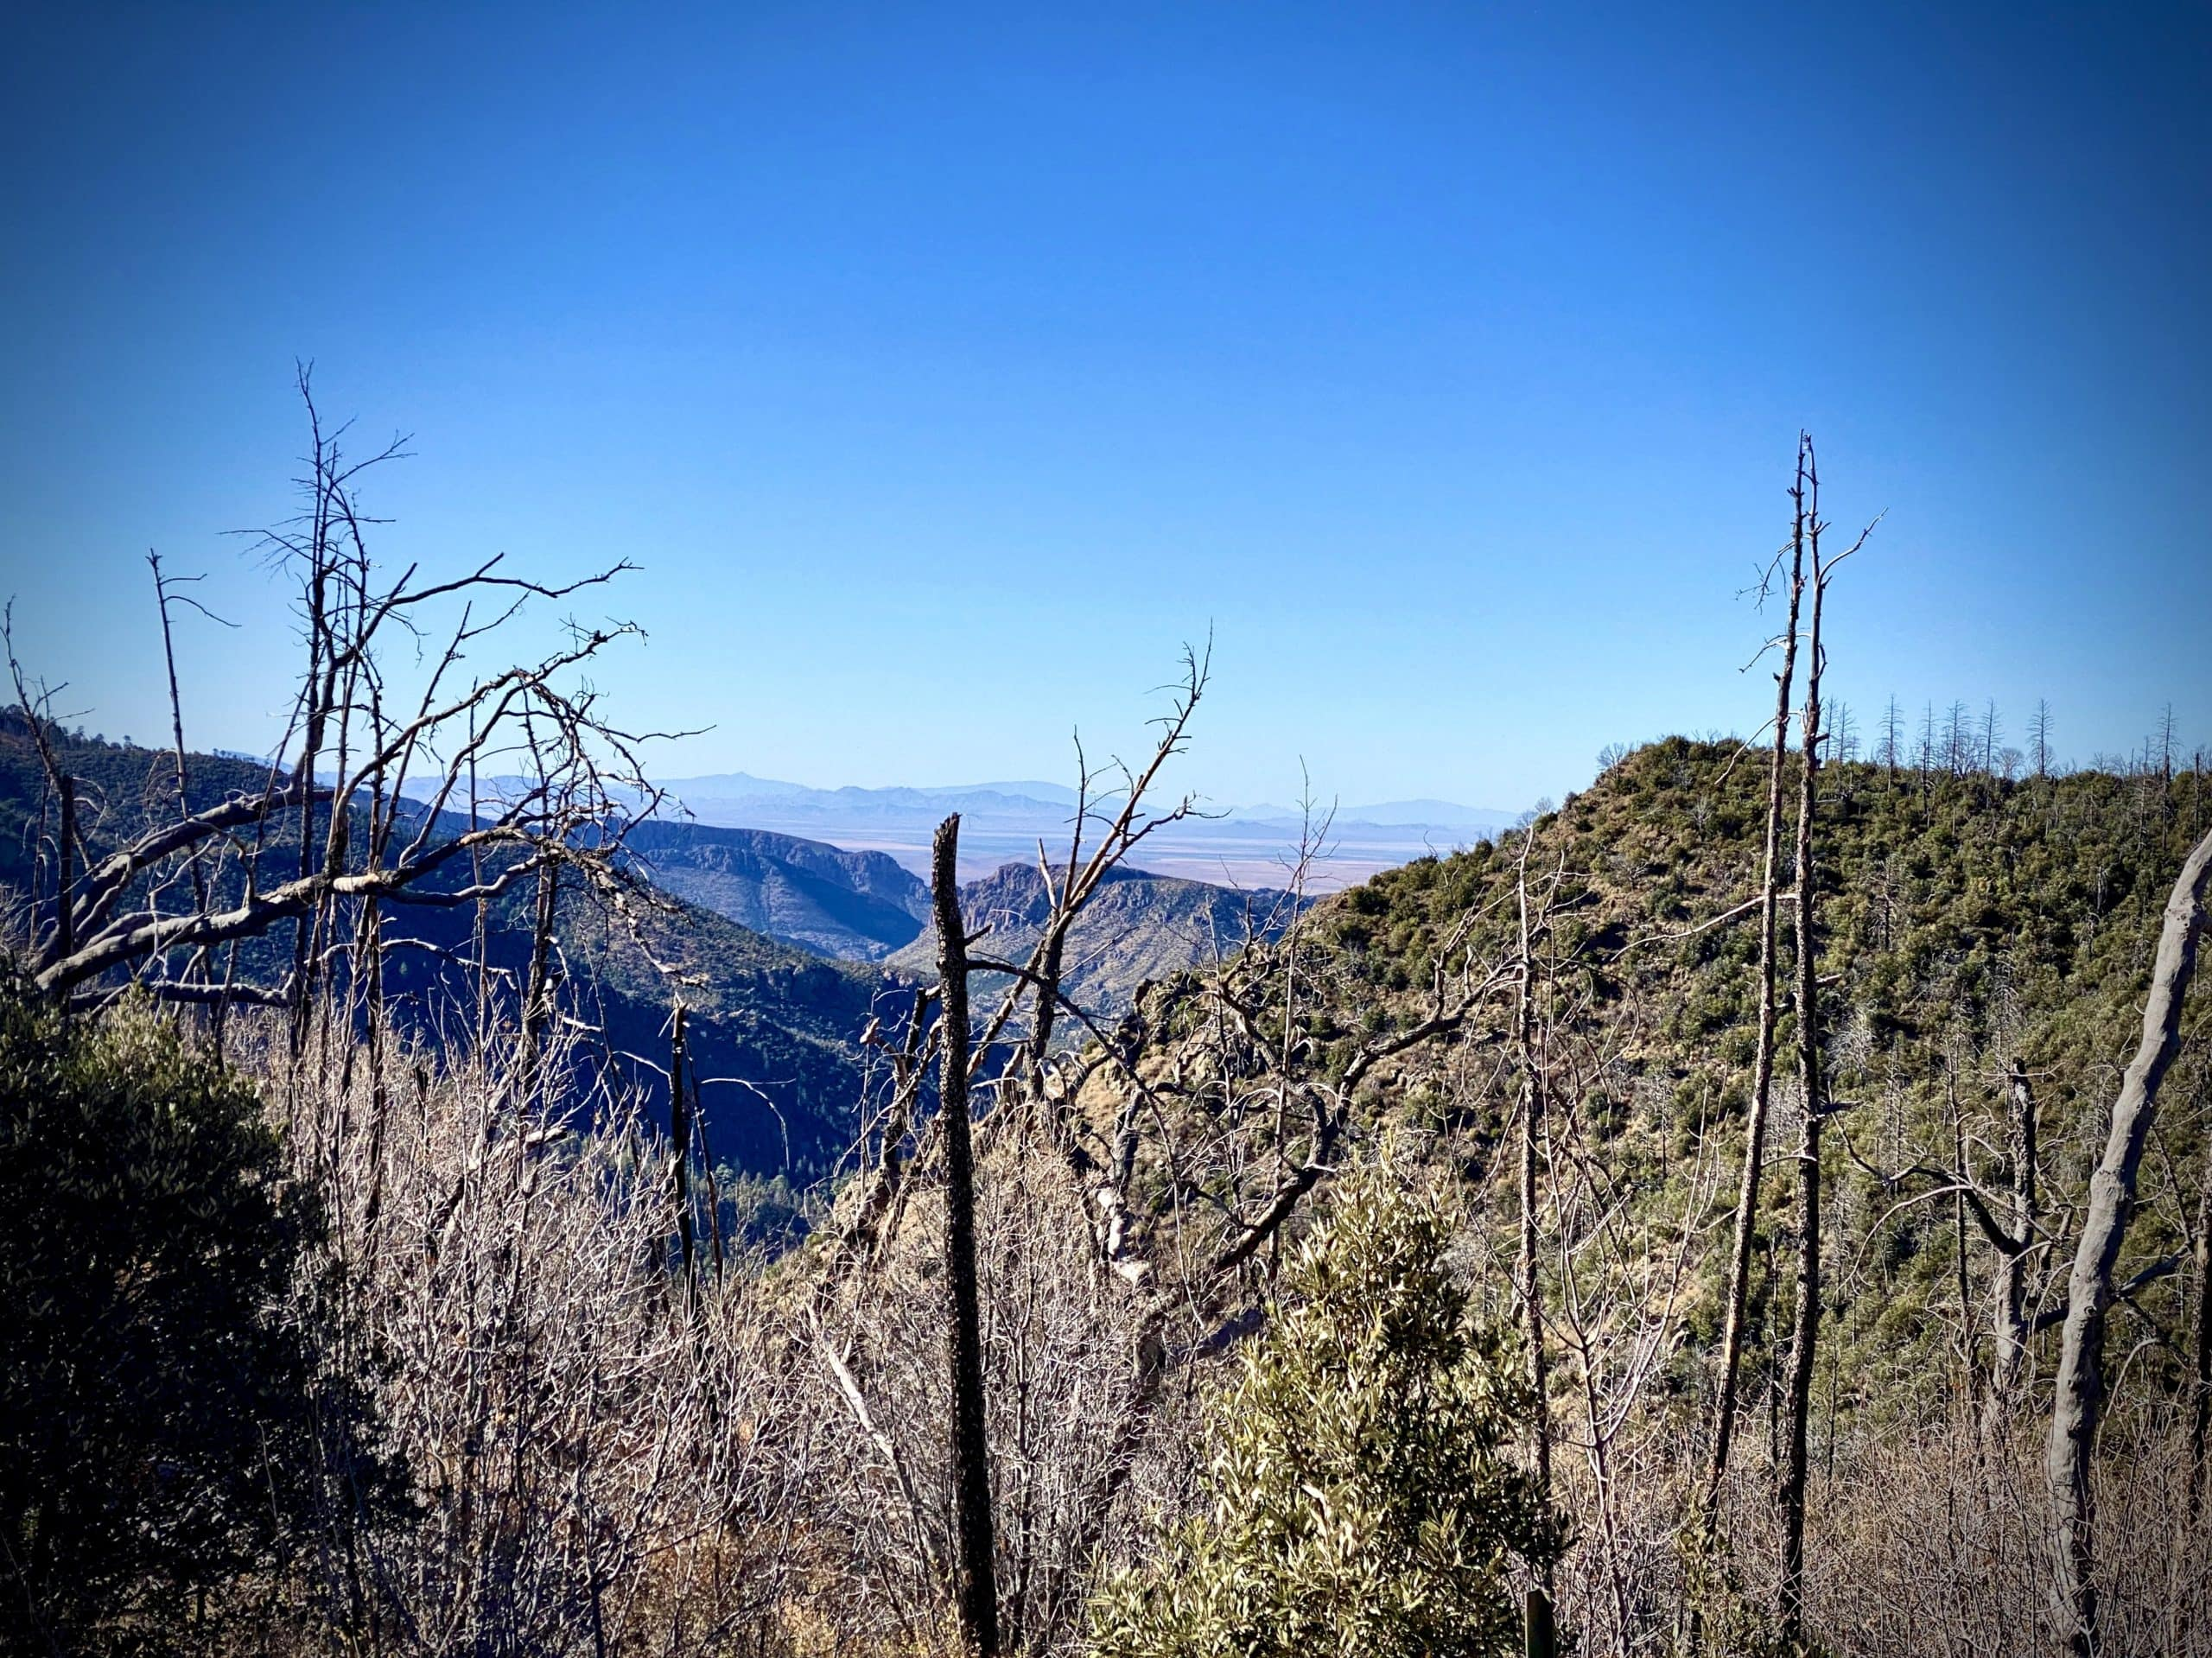 Onion Saddle in the Chiricahua Mountains looking west.